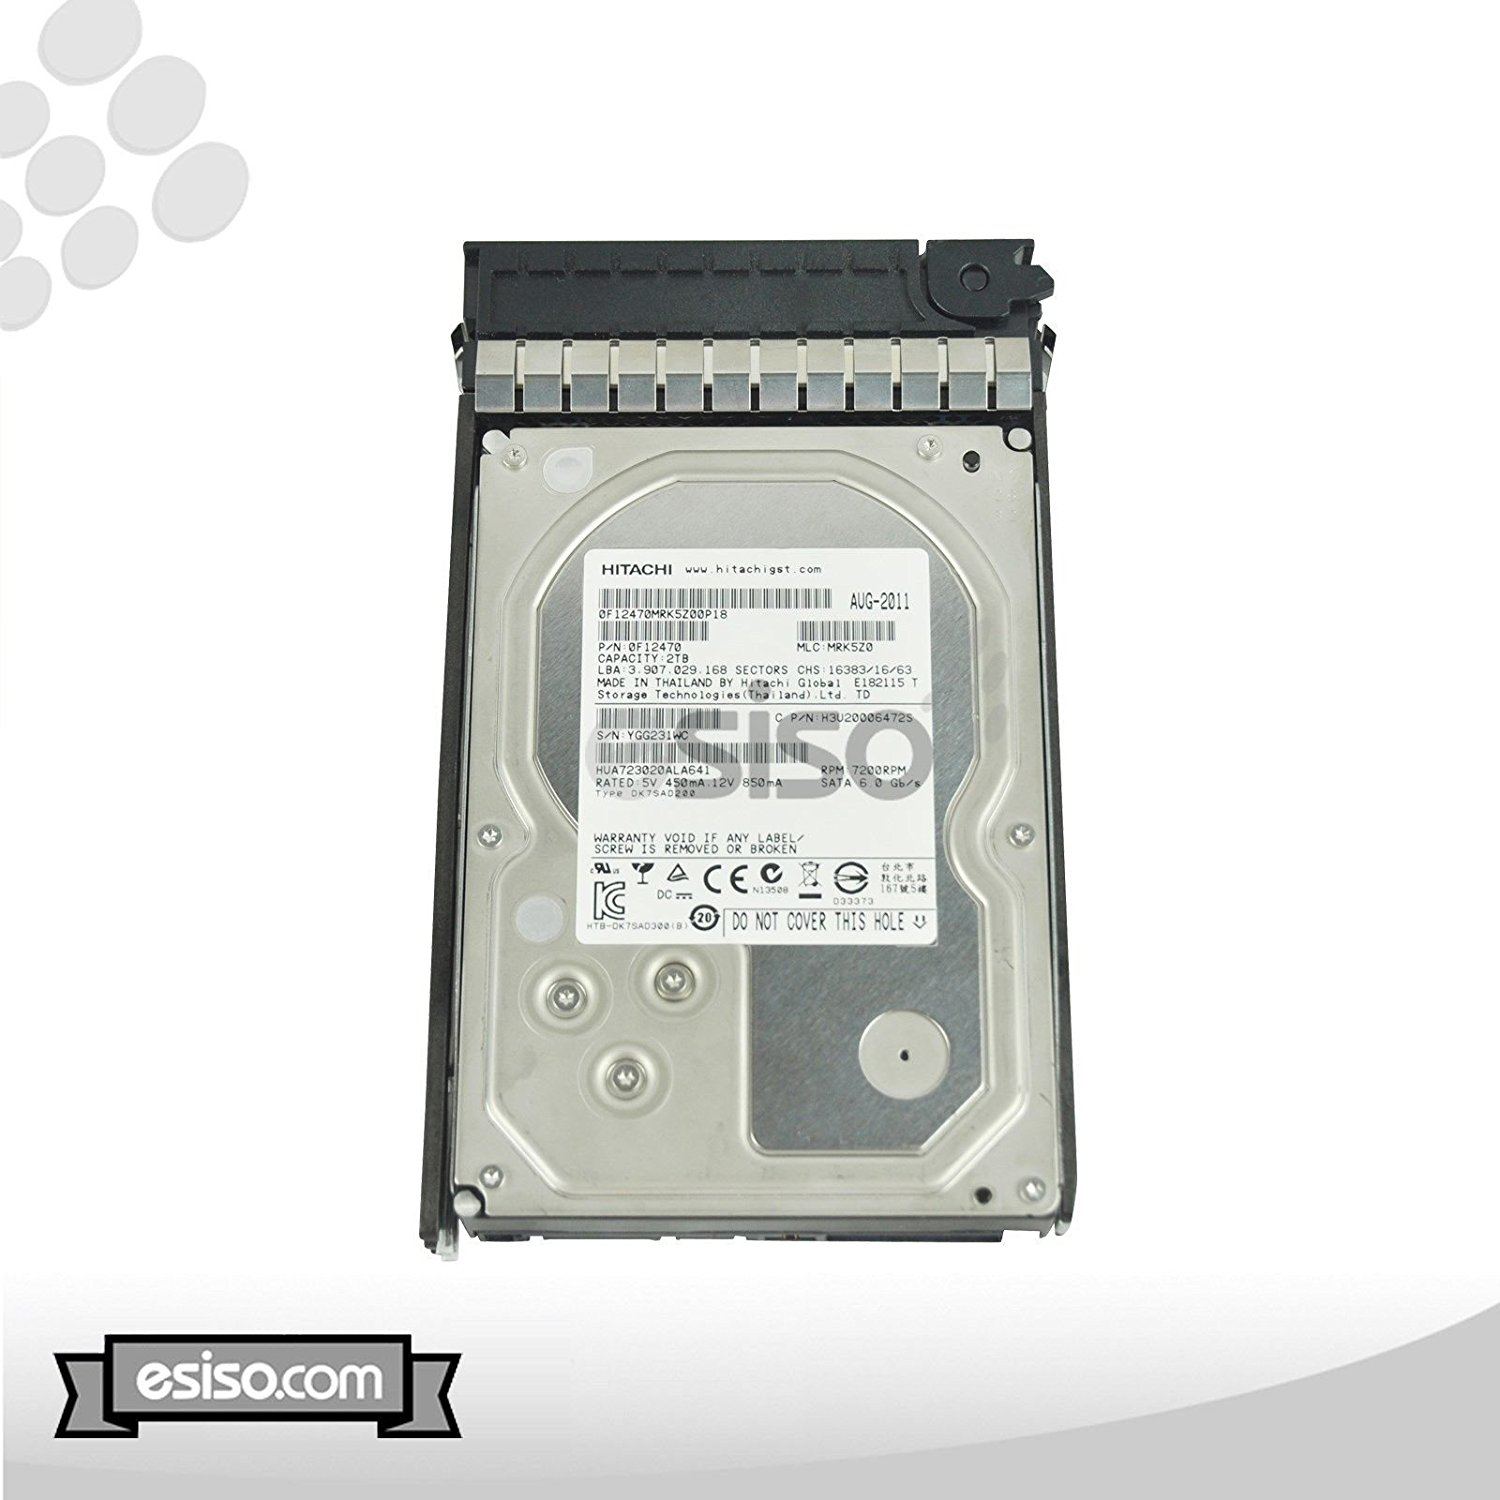 "HUA723020ALA641 Ultrastar 2TB 64MB 7200RPM 3.5"" SATA 6Gb/s Enterprise Hard Drive With HP Tray For Proliant DL385 G5 G6 G7 ML370 G6 DL160 DL185 DL180 DL120 DL165 DL380 G5 G6 G7 ML110 ML150 ML350 G5 G6"